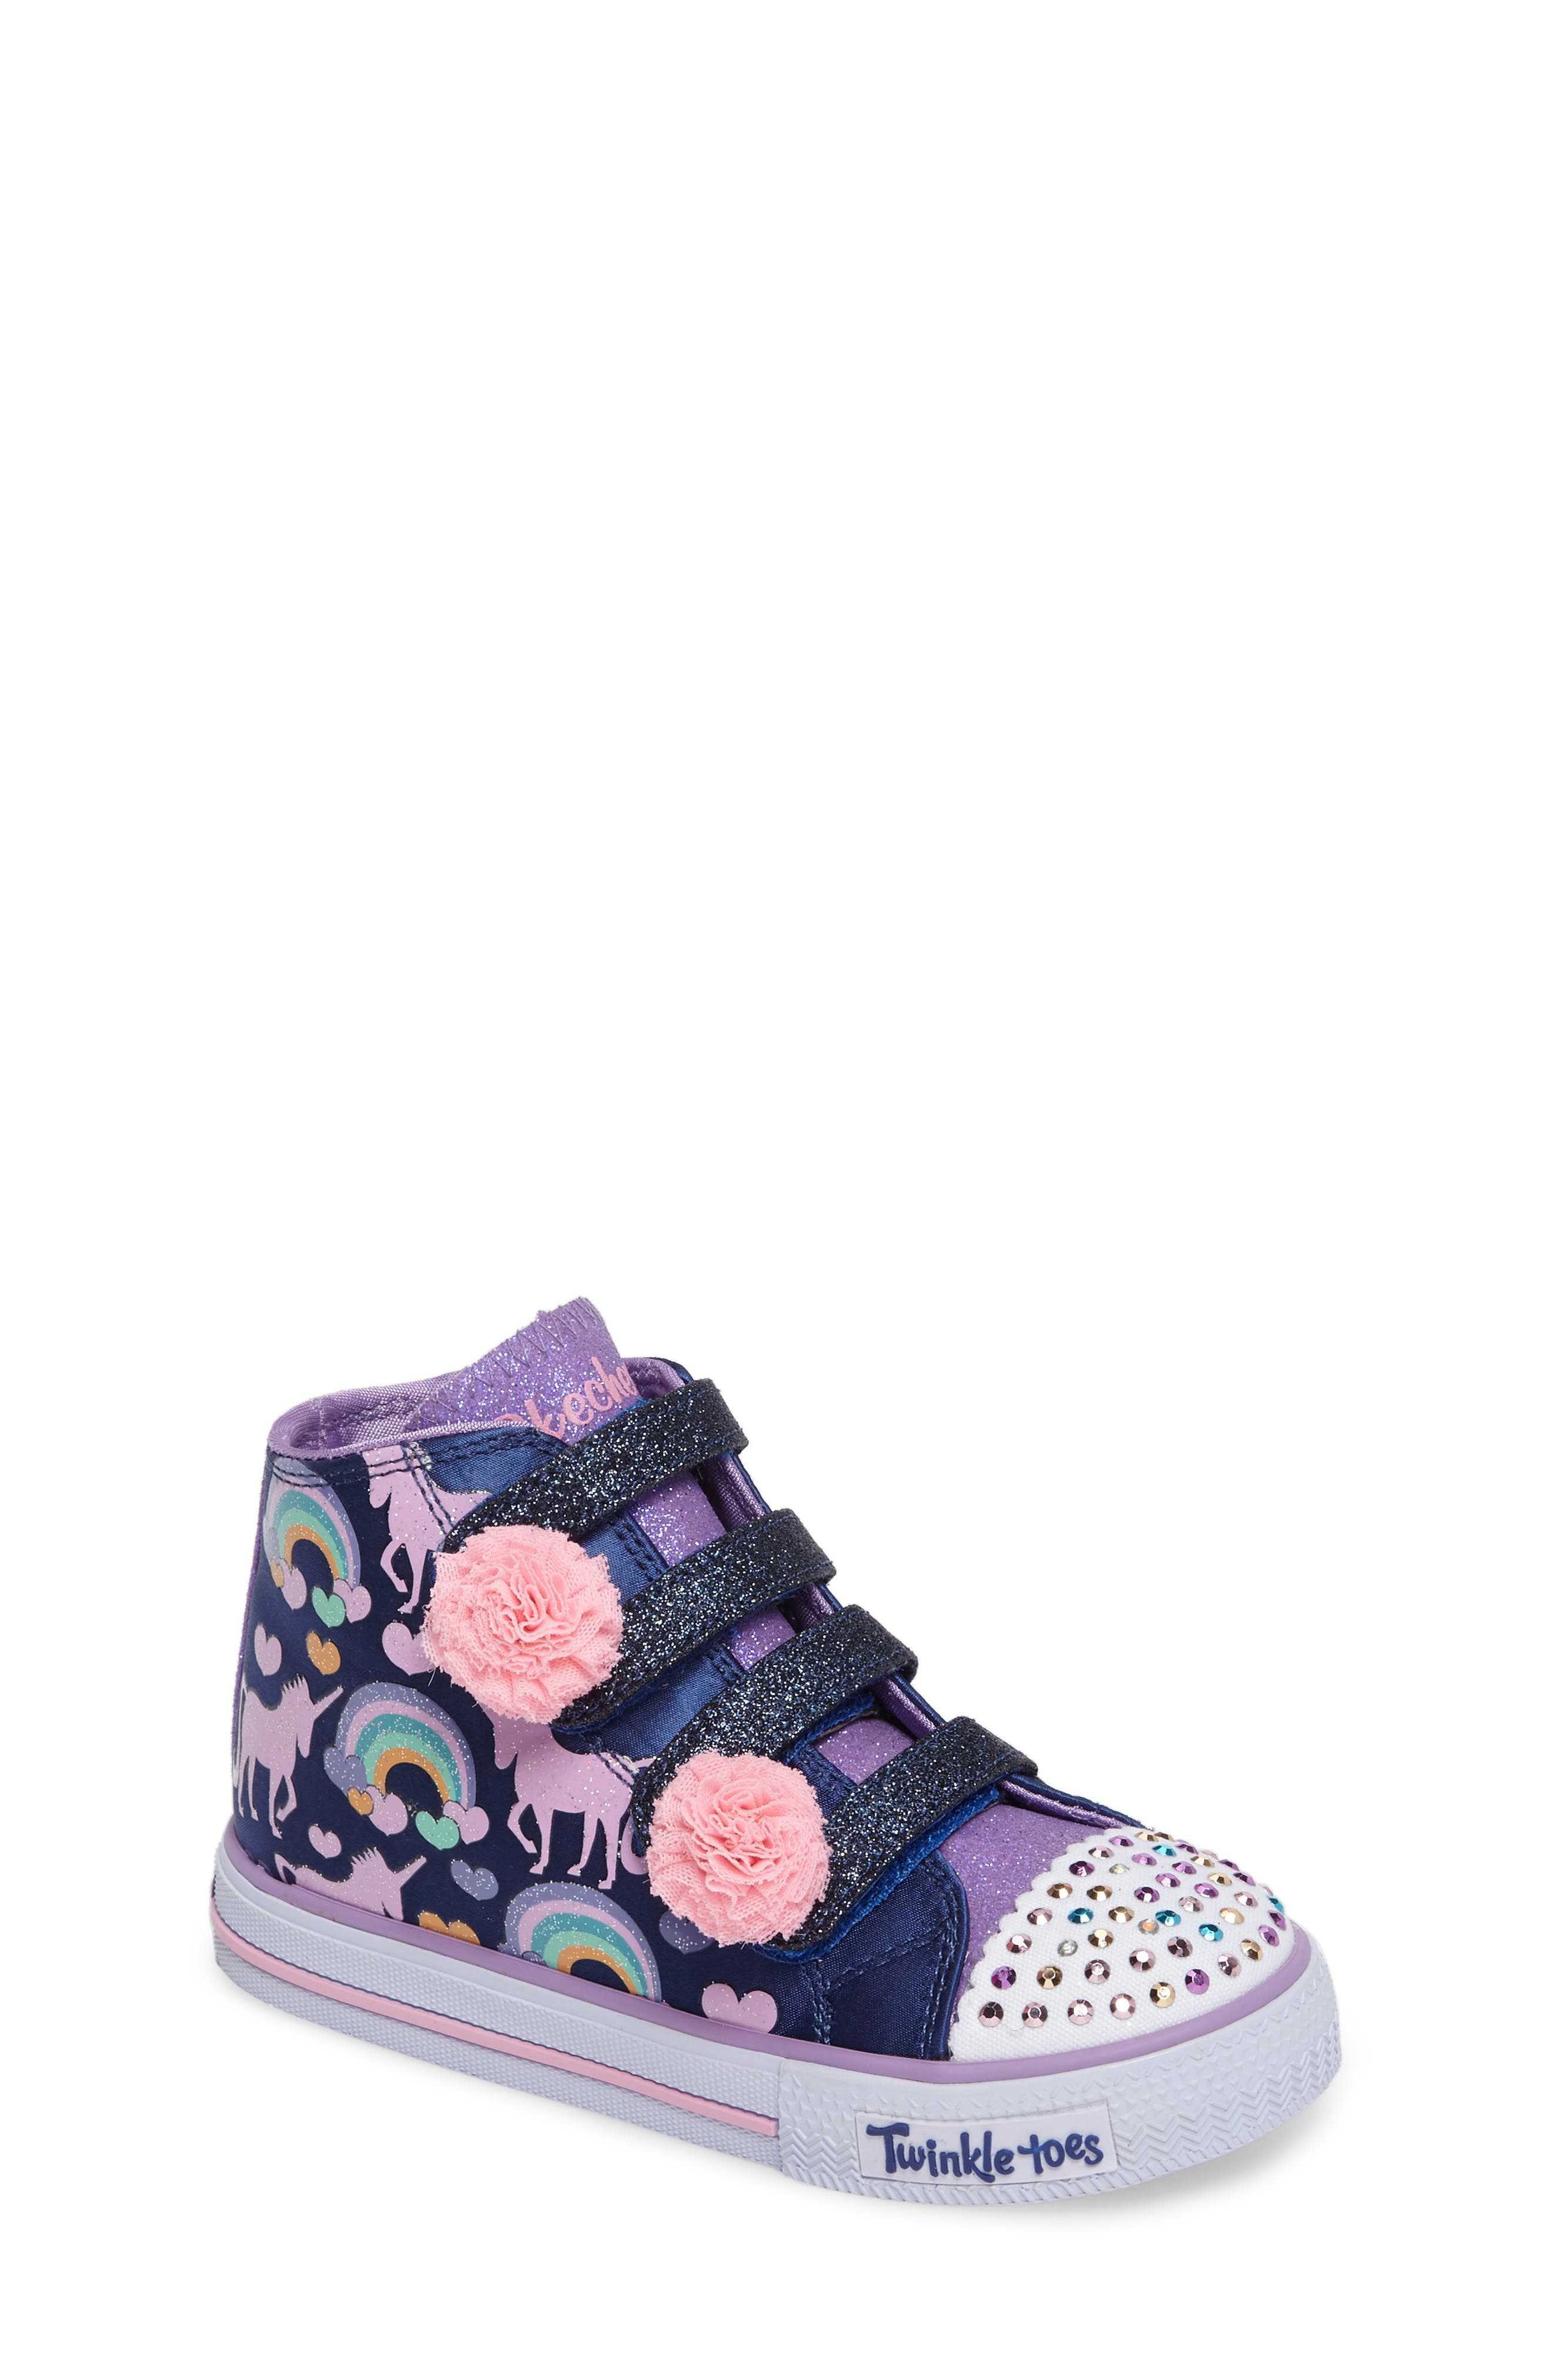 Twinkle Toes Shuffles High Top Sneaker,                             Main thumbnail 1, color,                             400